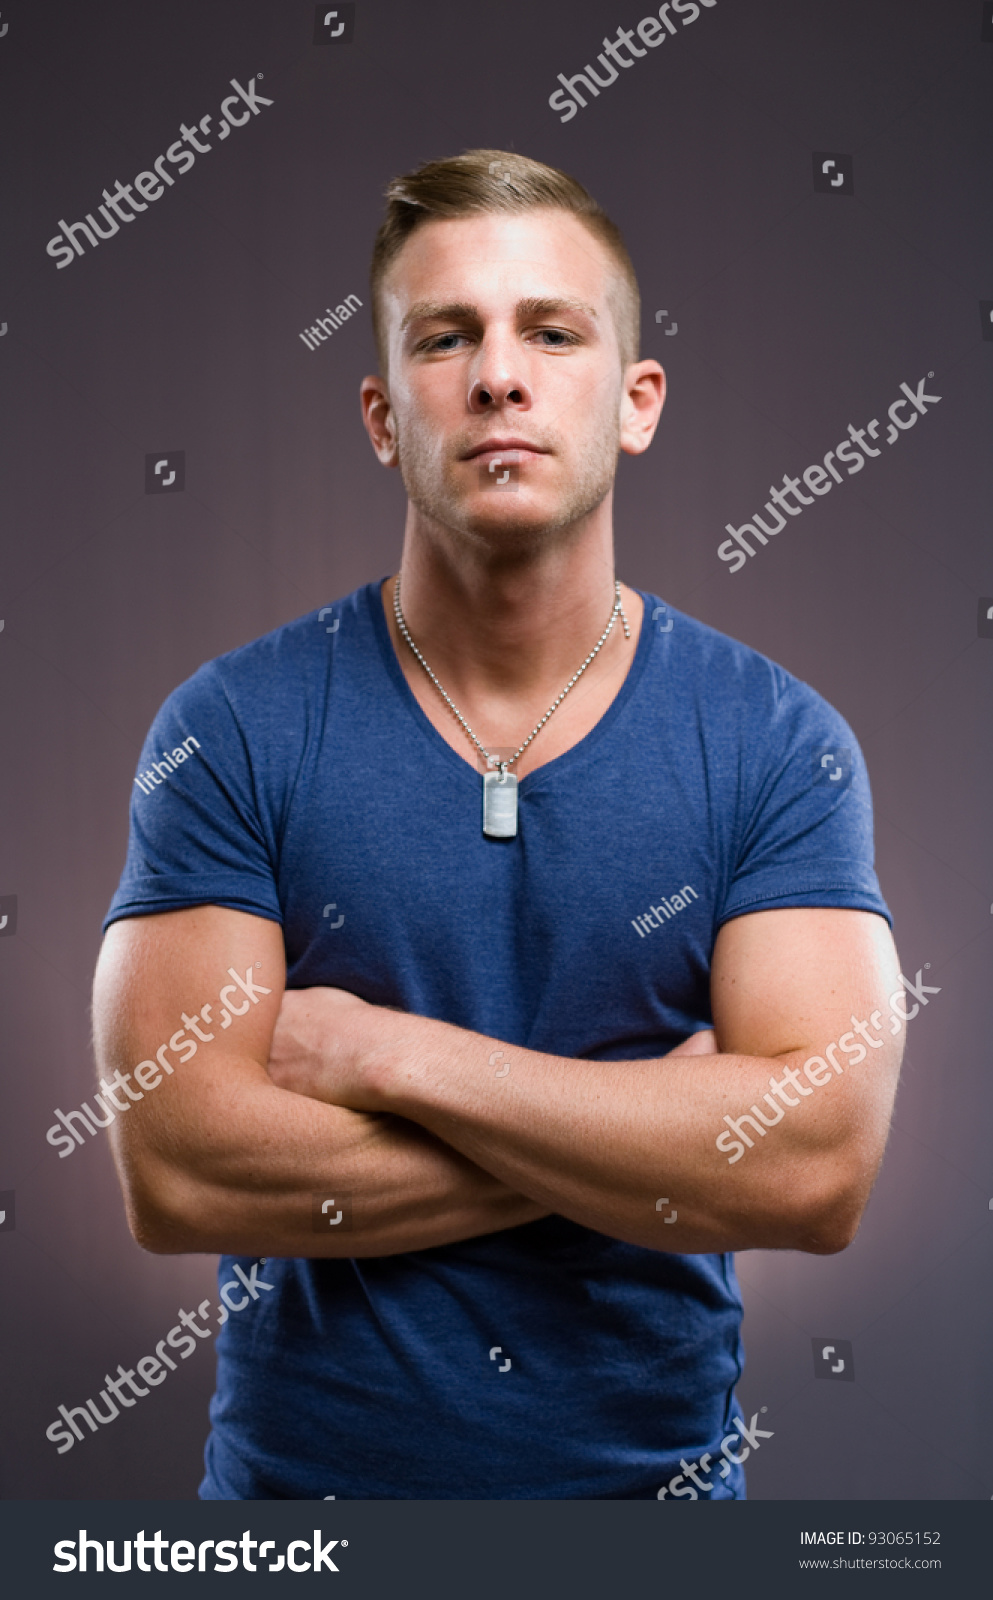 15 Year Boys Bedroom: Bouncer Portrait Tough Looking Muscular Young Stock Photo